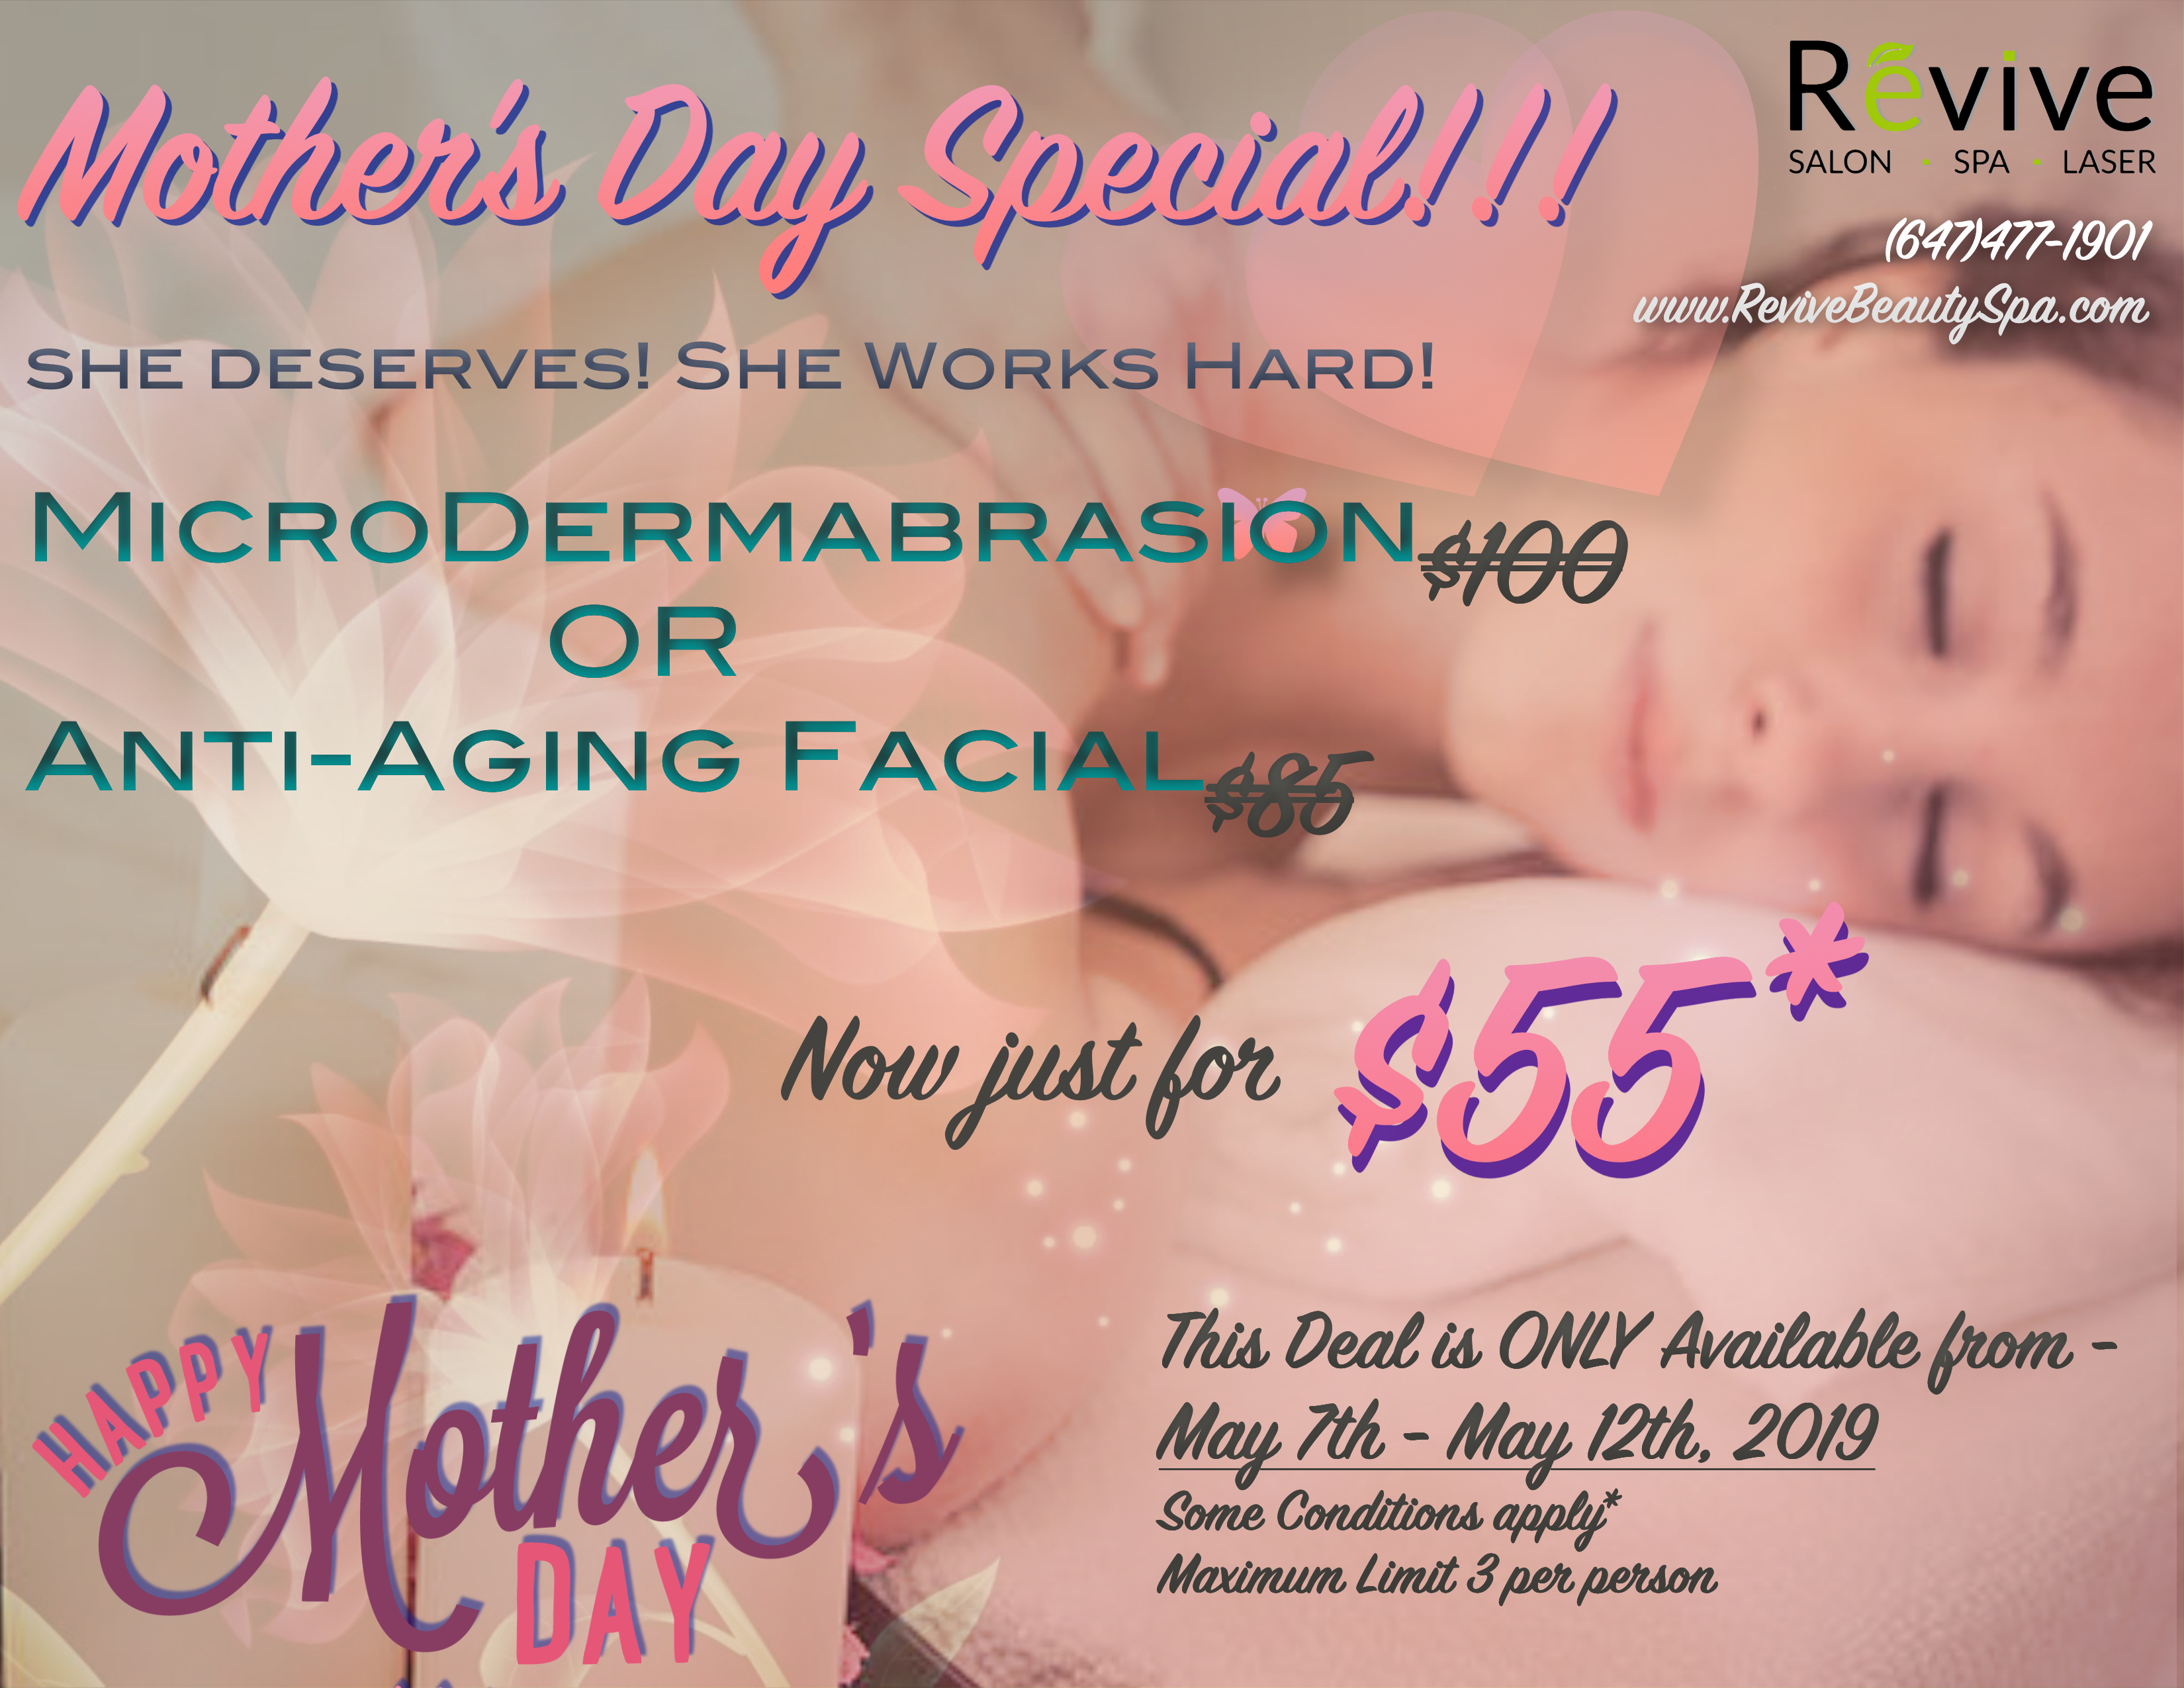 Revive Mother's Day Special Promotion